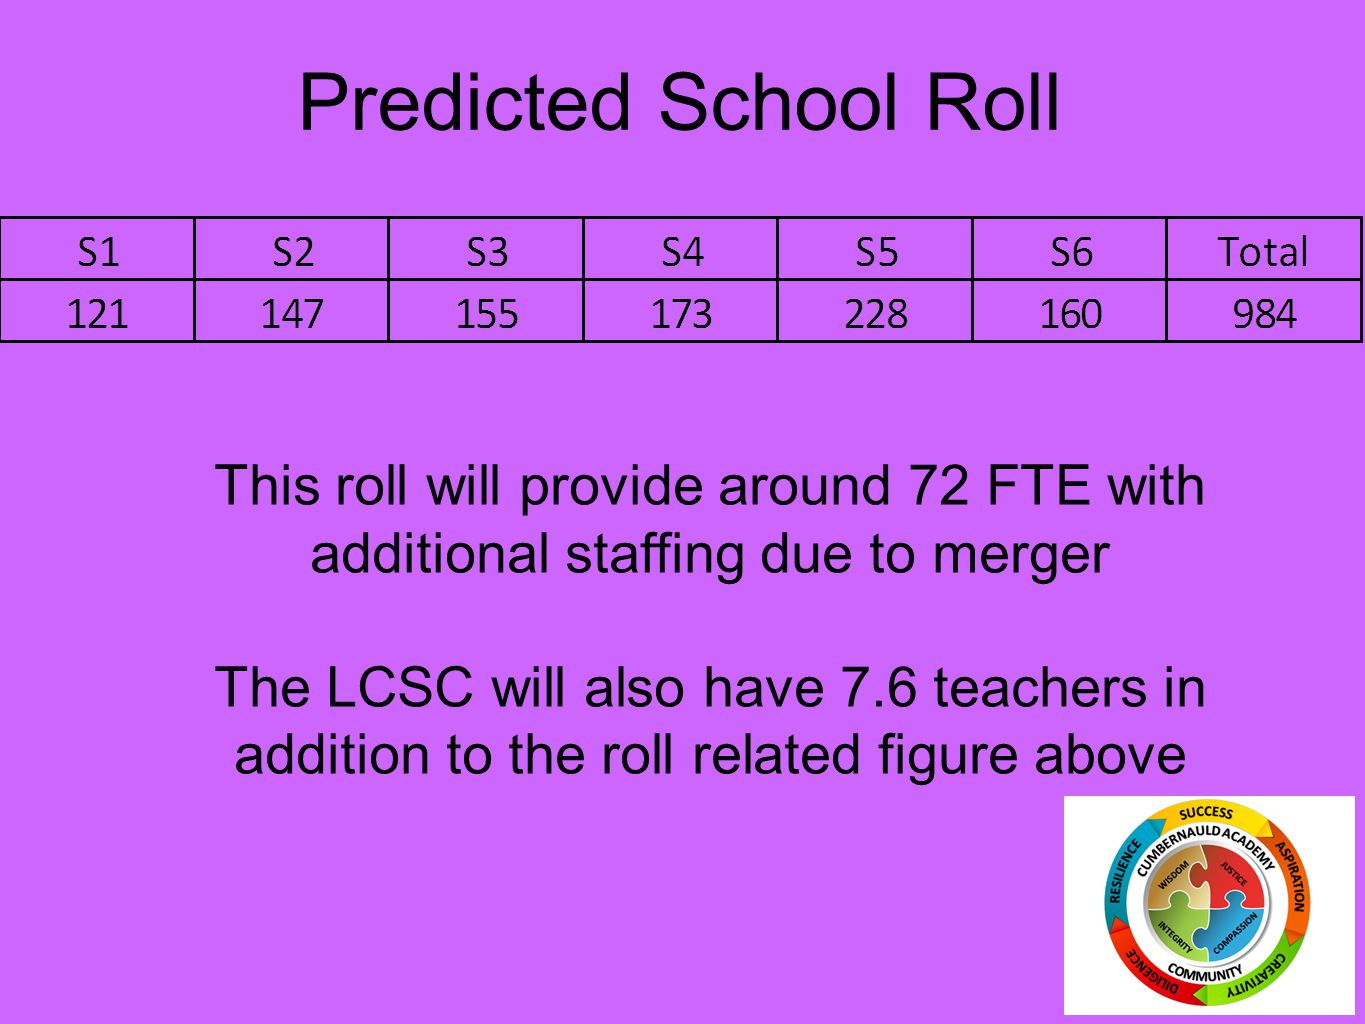 Predicted School Roll This roll will provide around 72 FTE with additional staffing due to merger The LCSC will also have 7.6 teachers in addition to the roll related figure above